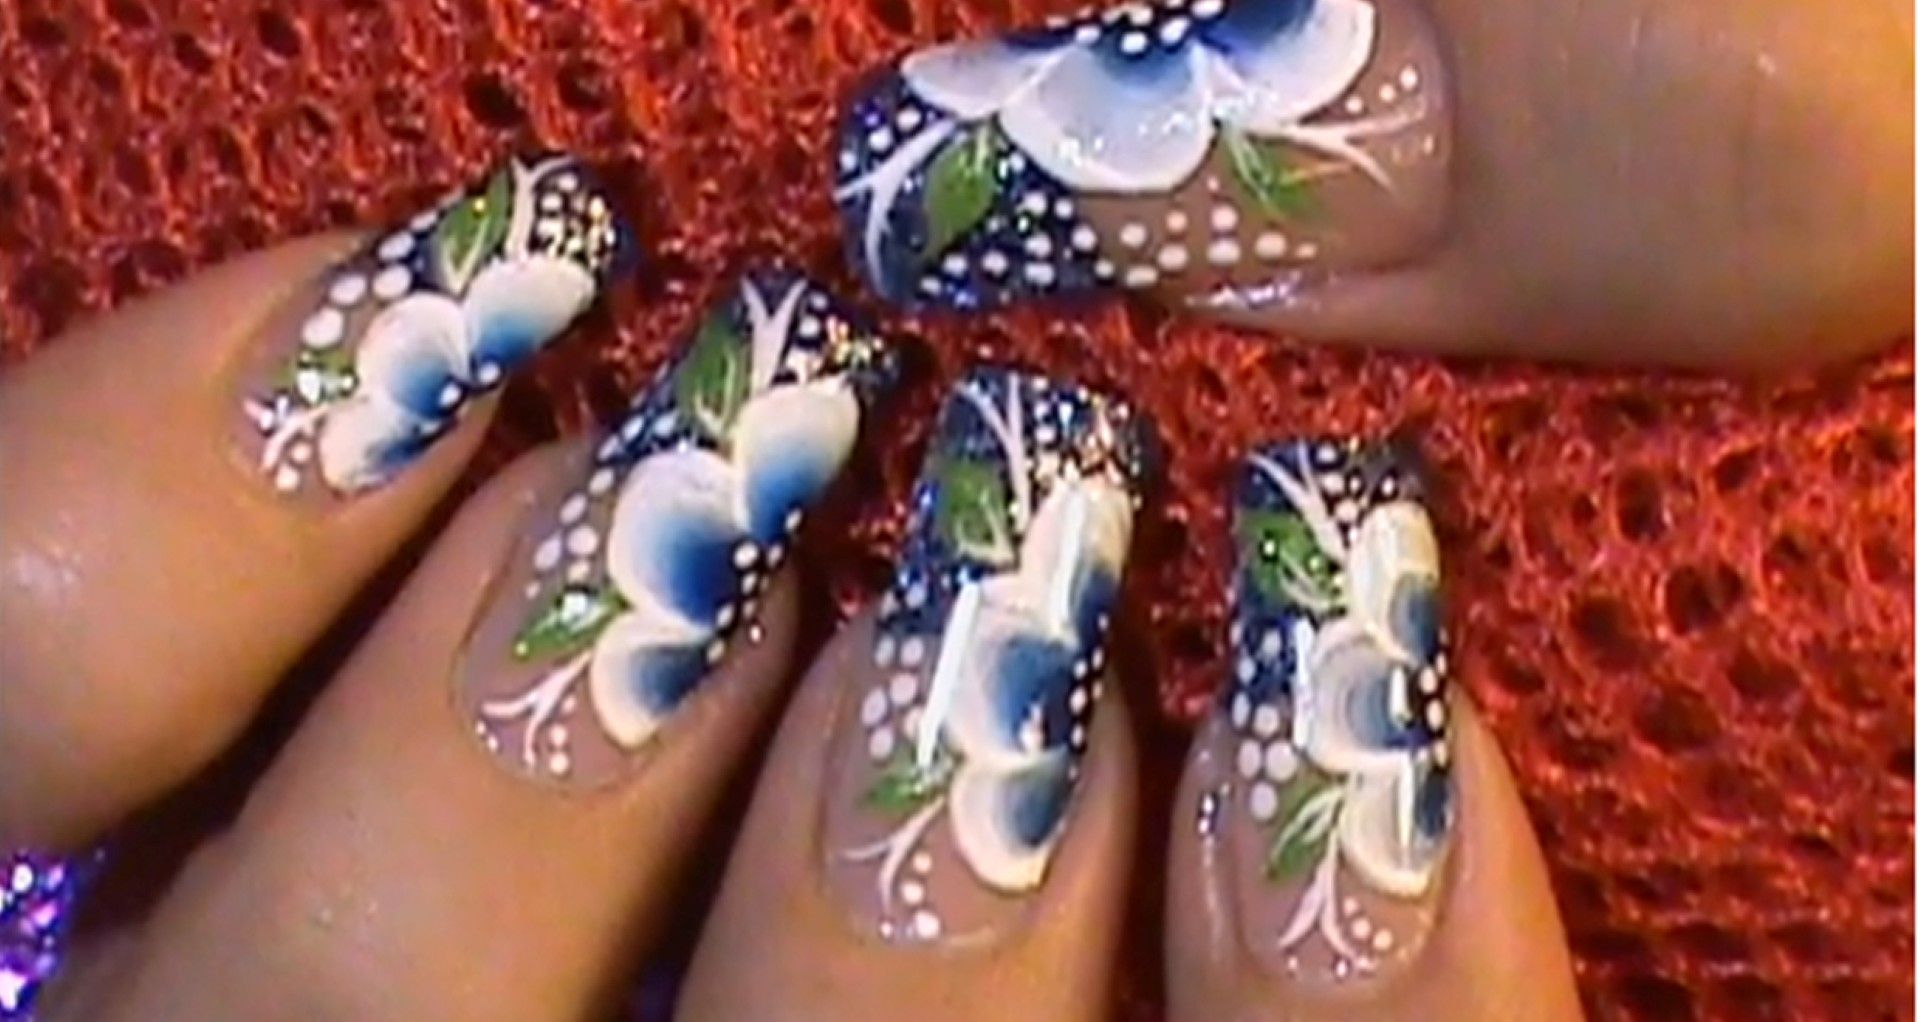 Nail Art Video Tutorial - One Stroke Blue Flower  Here is another great nail art design challenge for you. Play around with the colours, and create some interesting flower nail art designs. Have fun!  Follow the link Below for the video:  http://supermodelssa.co.za/nail-art-video-tutorial-one-stroke-blue-flower/